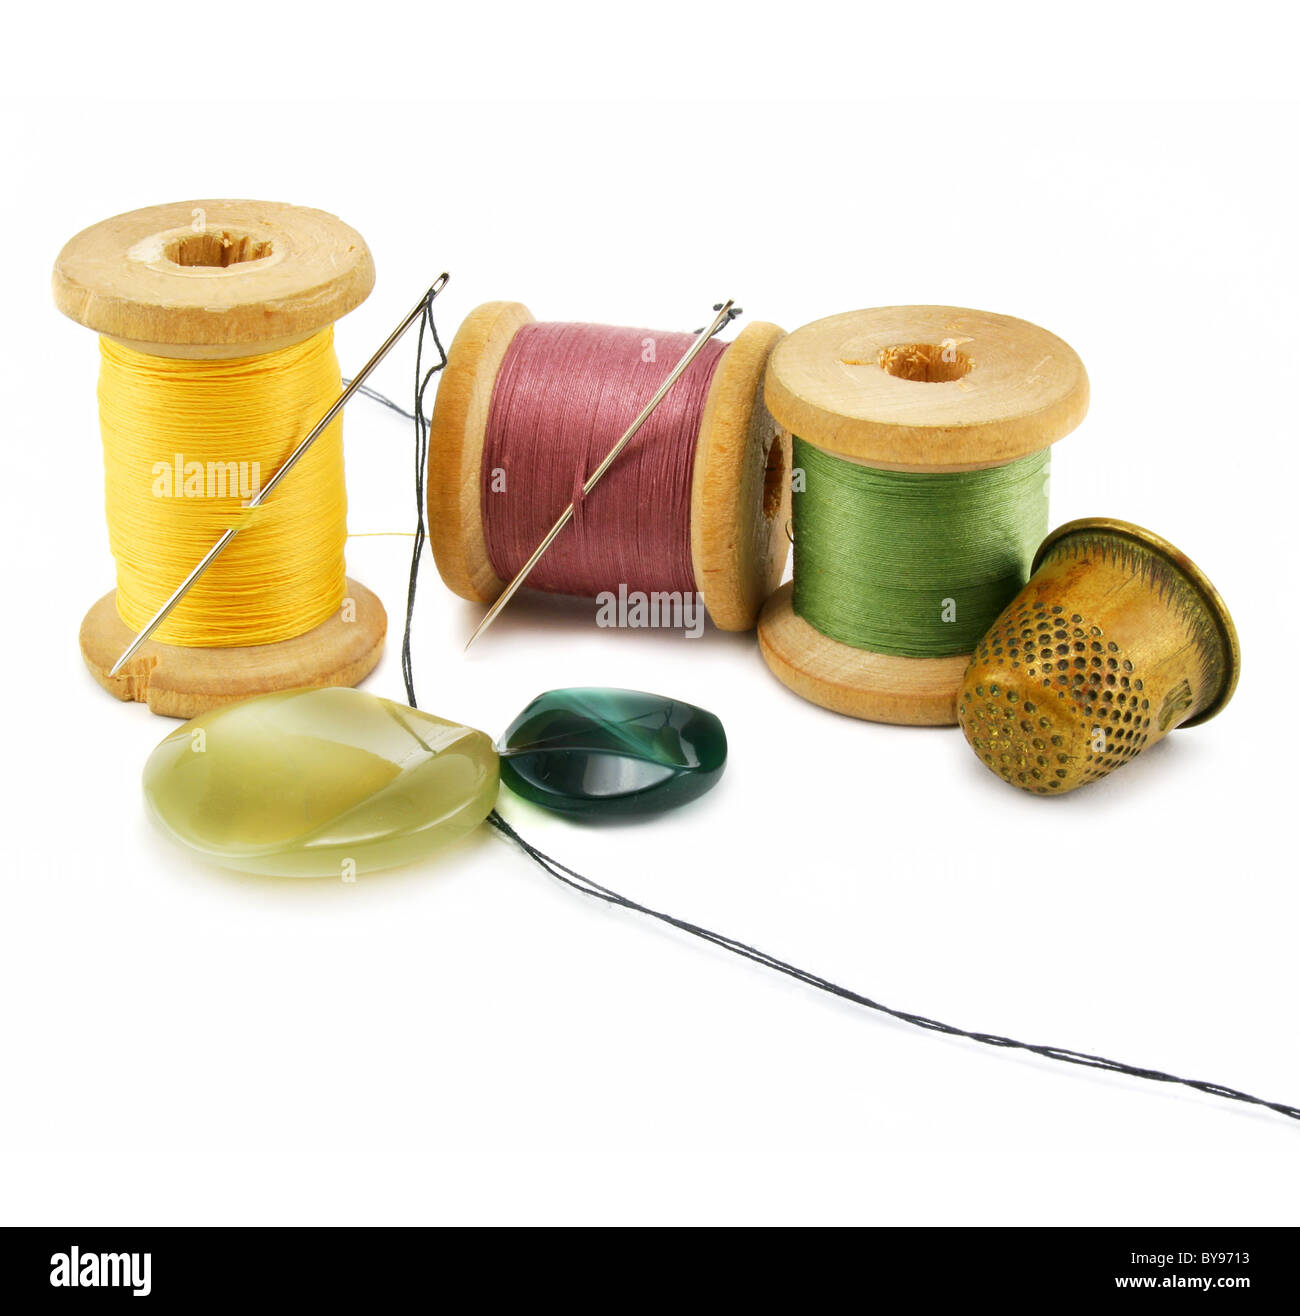 Spool of thread, thimble and needle - Stock Image